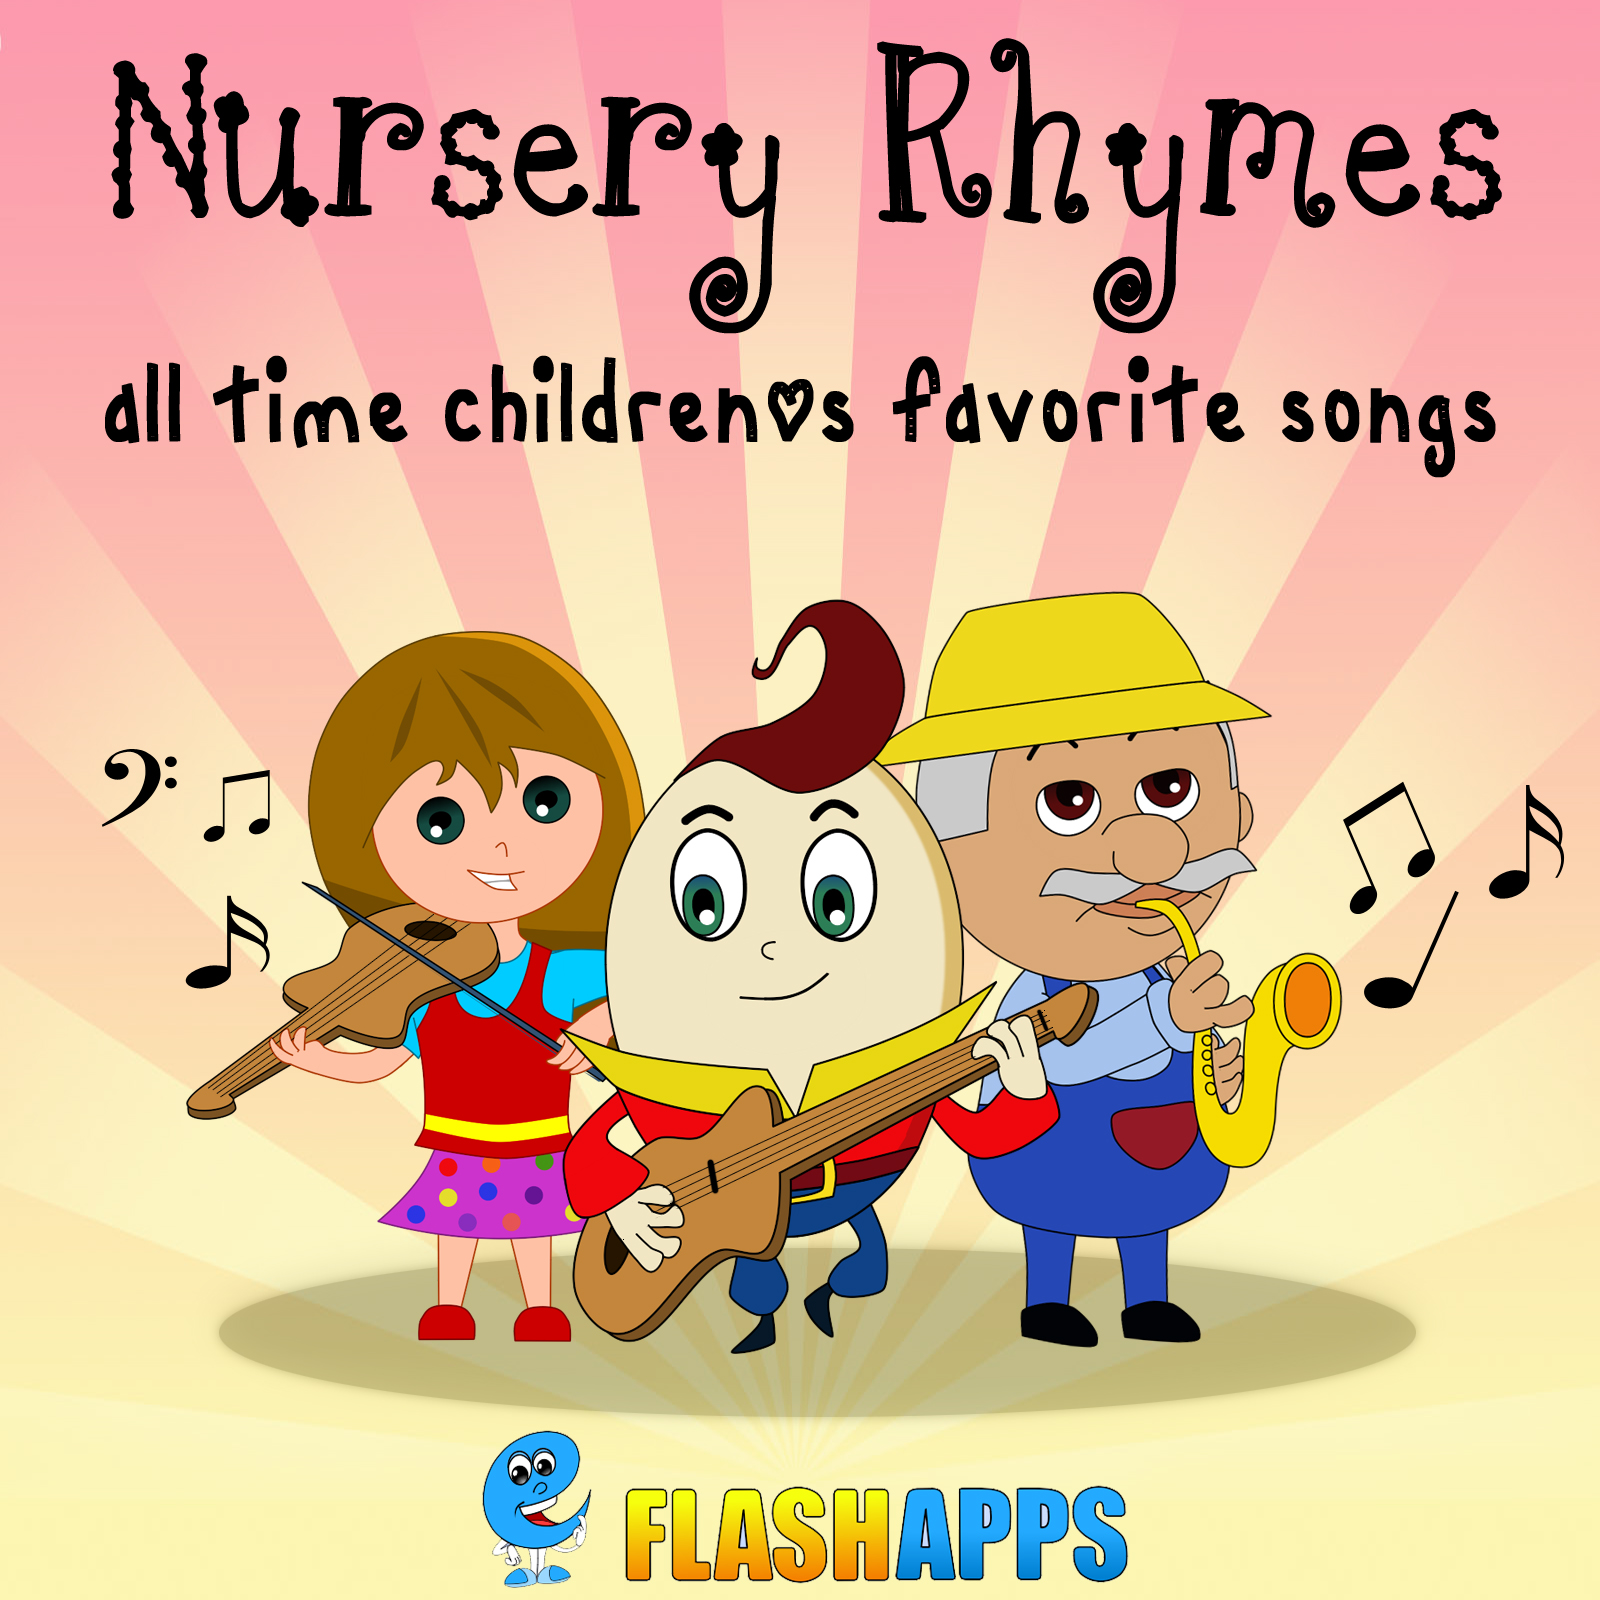 Children S Nursery Rhymes Videos Go Viral On Youtube With A 5000 Increase In Views In Less Than 3 Months